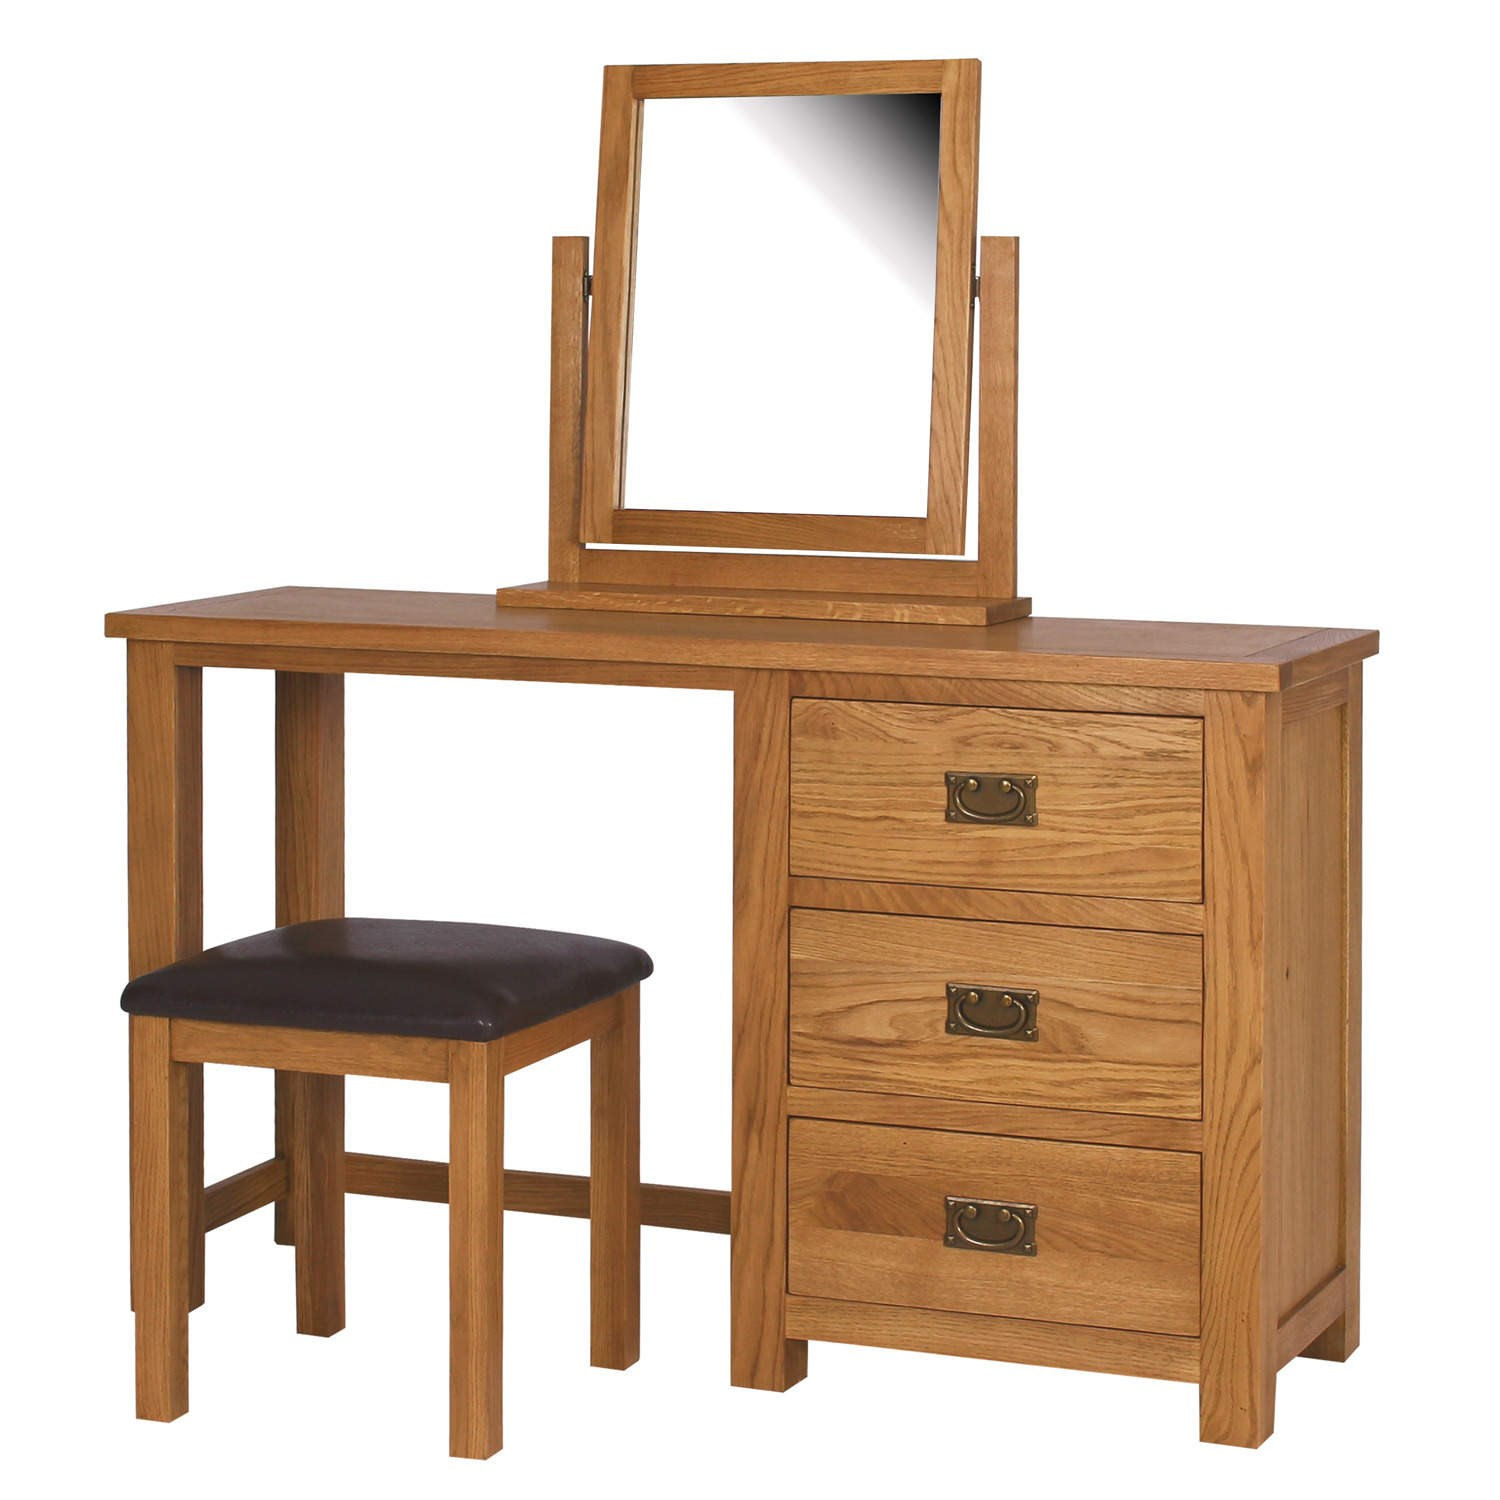 Rustic saxon solid oak wooden dressing table bedroom